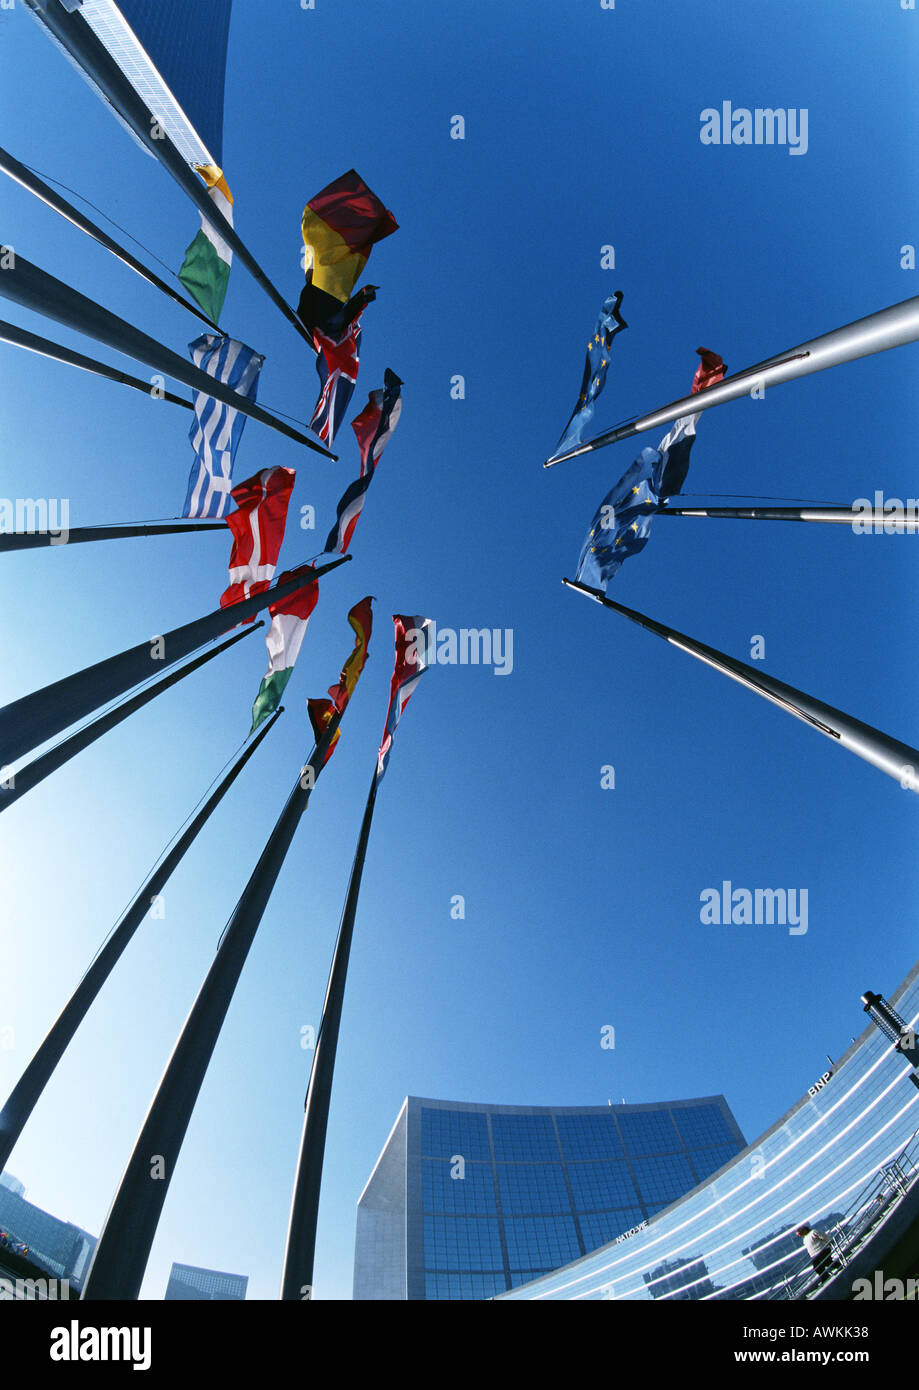 European flags, low angle view - Stock Image